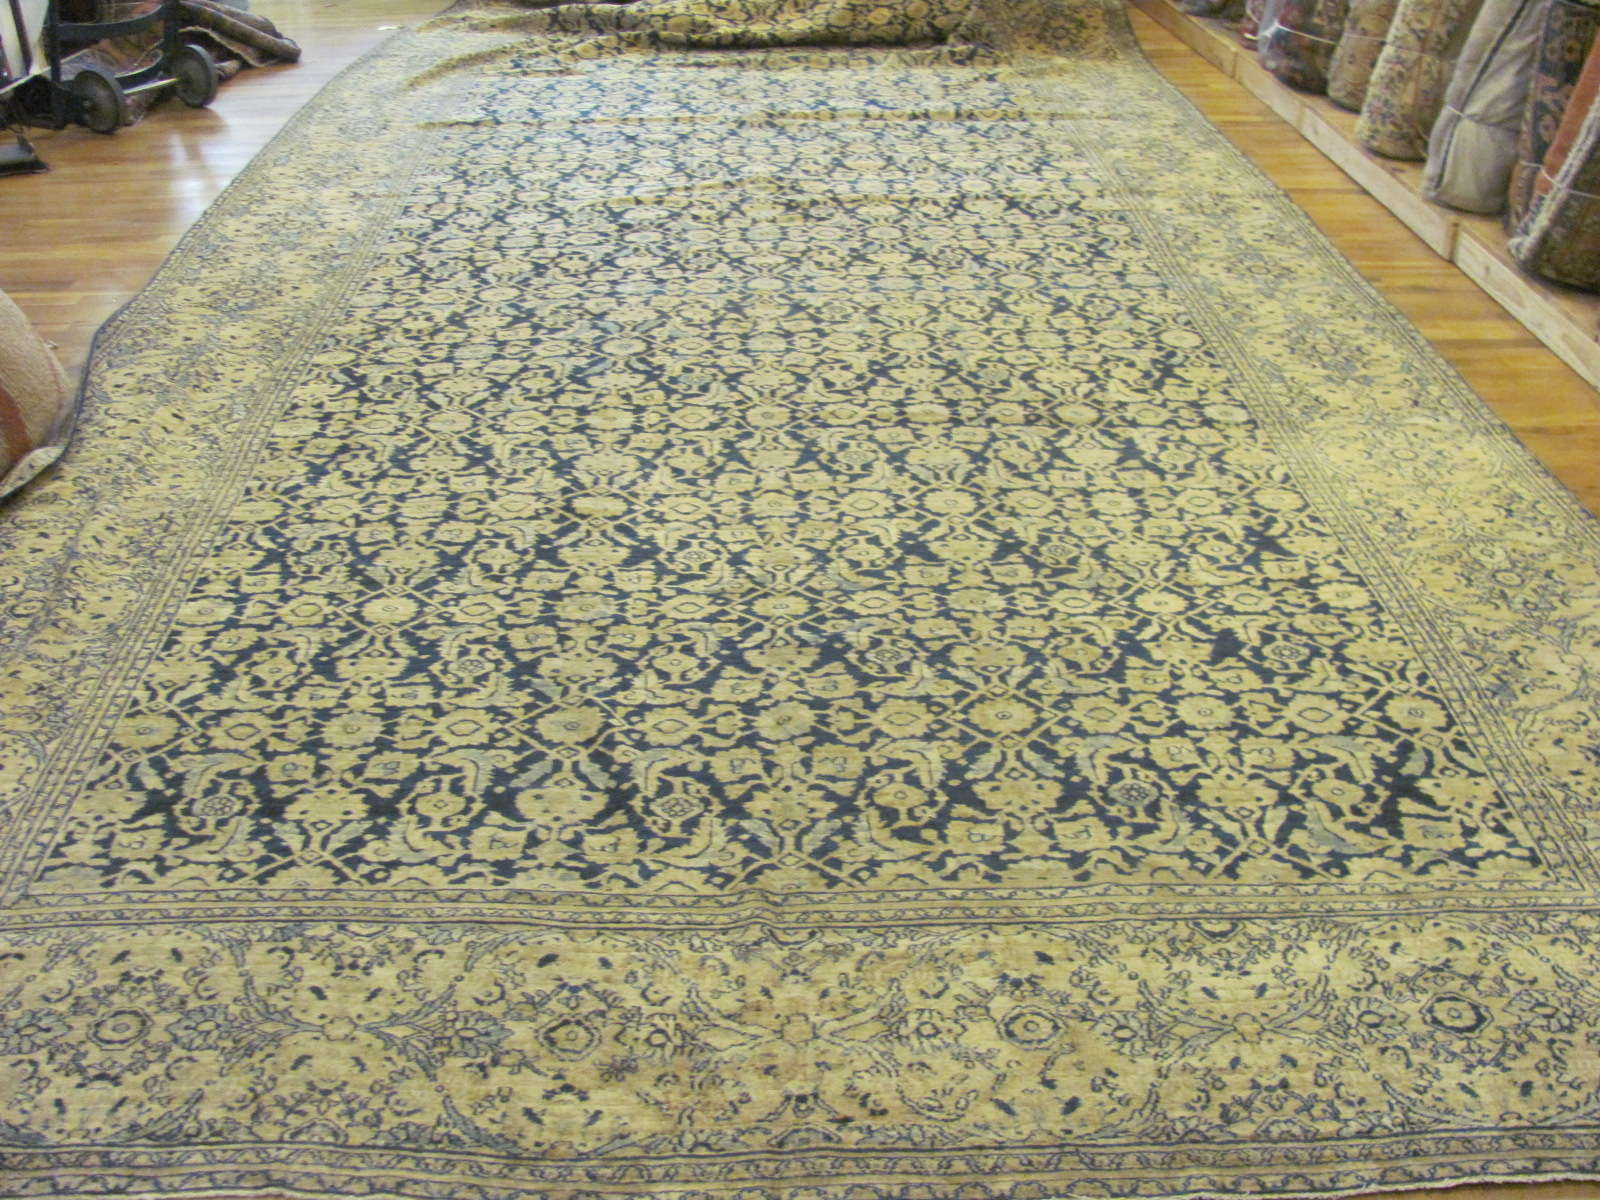 Antique Persian Khorassan Rug | Circa 1910